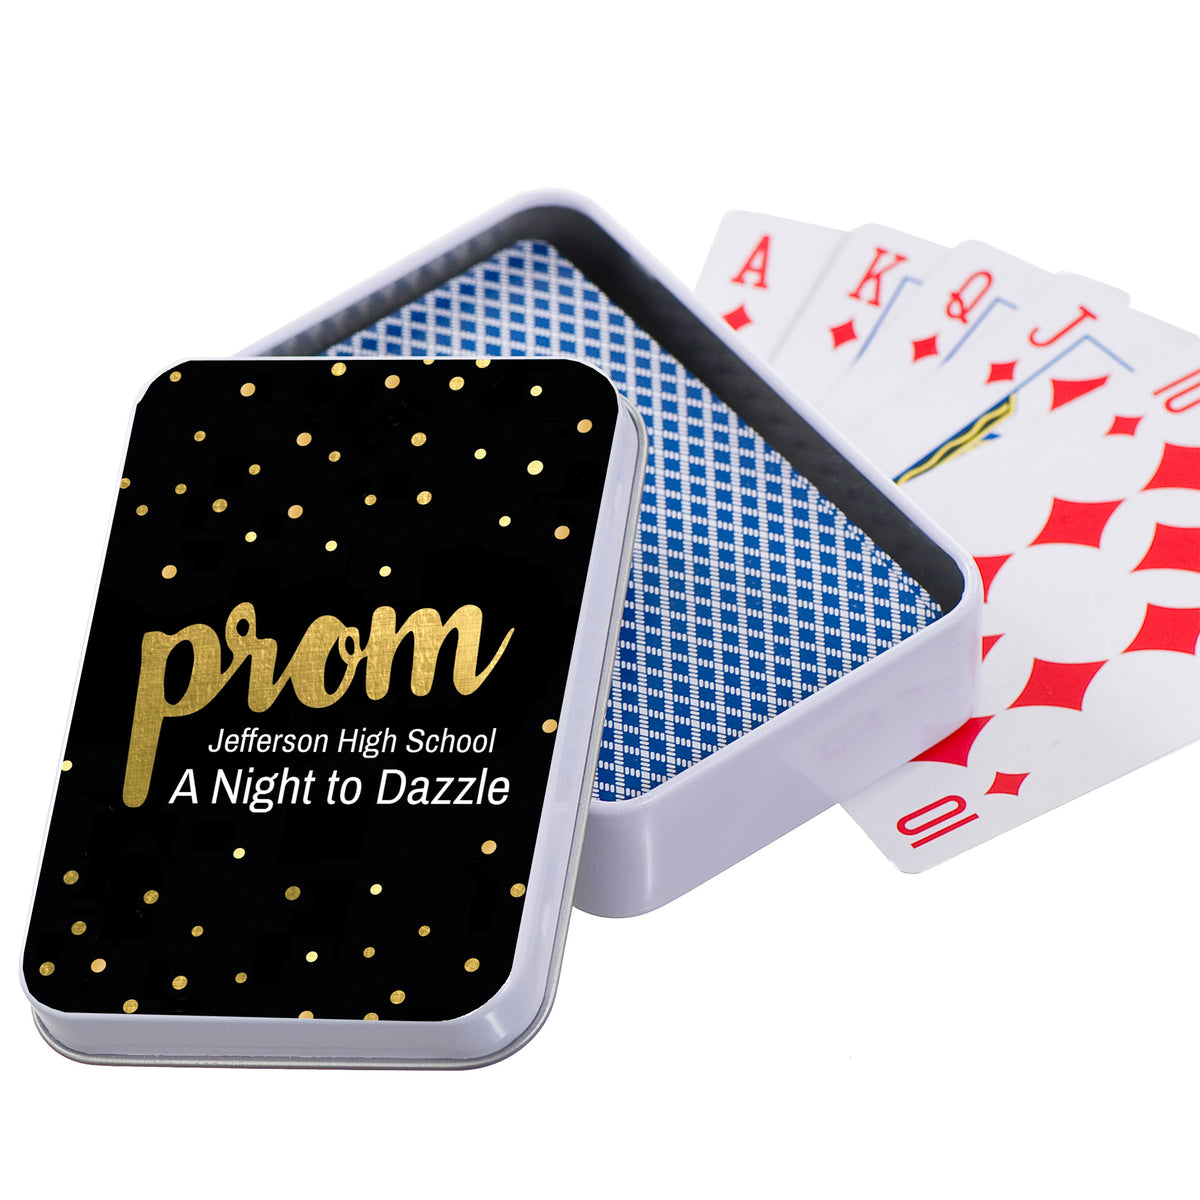 Prom Confetti Personalized Playing Card Cases